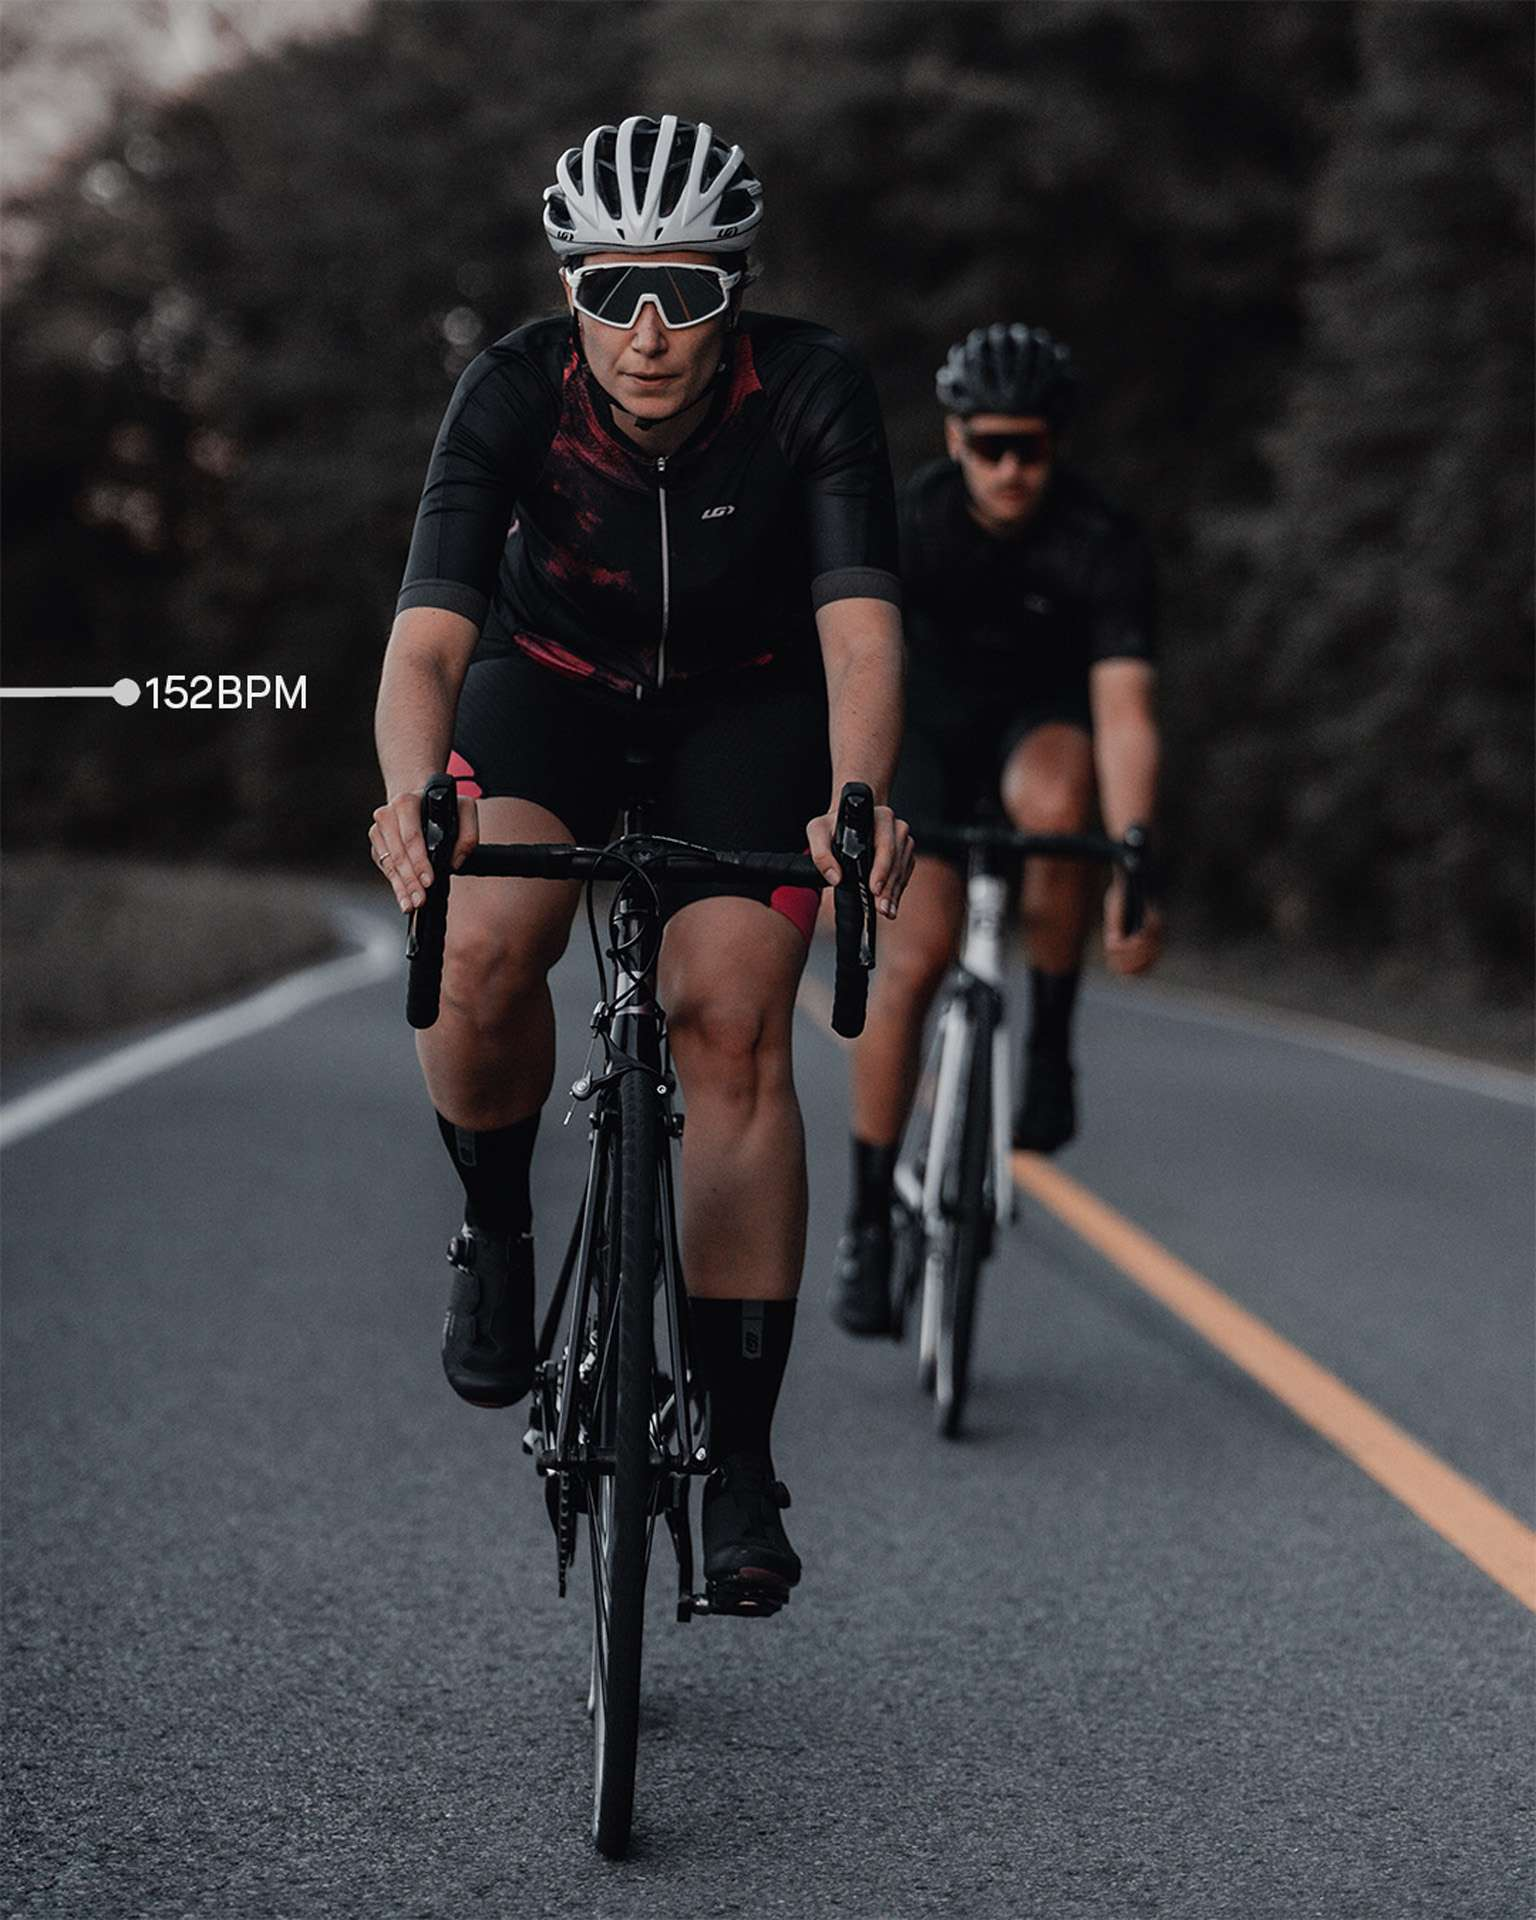 female model wearing black bike helmet and black and pink biking bodysuit with sunglasses biking on road on a black sports bike for Spring Summer 2020 campaign of Louis Garneau with artistic direction and styling by Studio TB